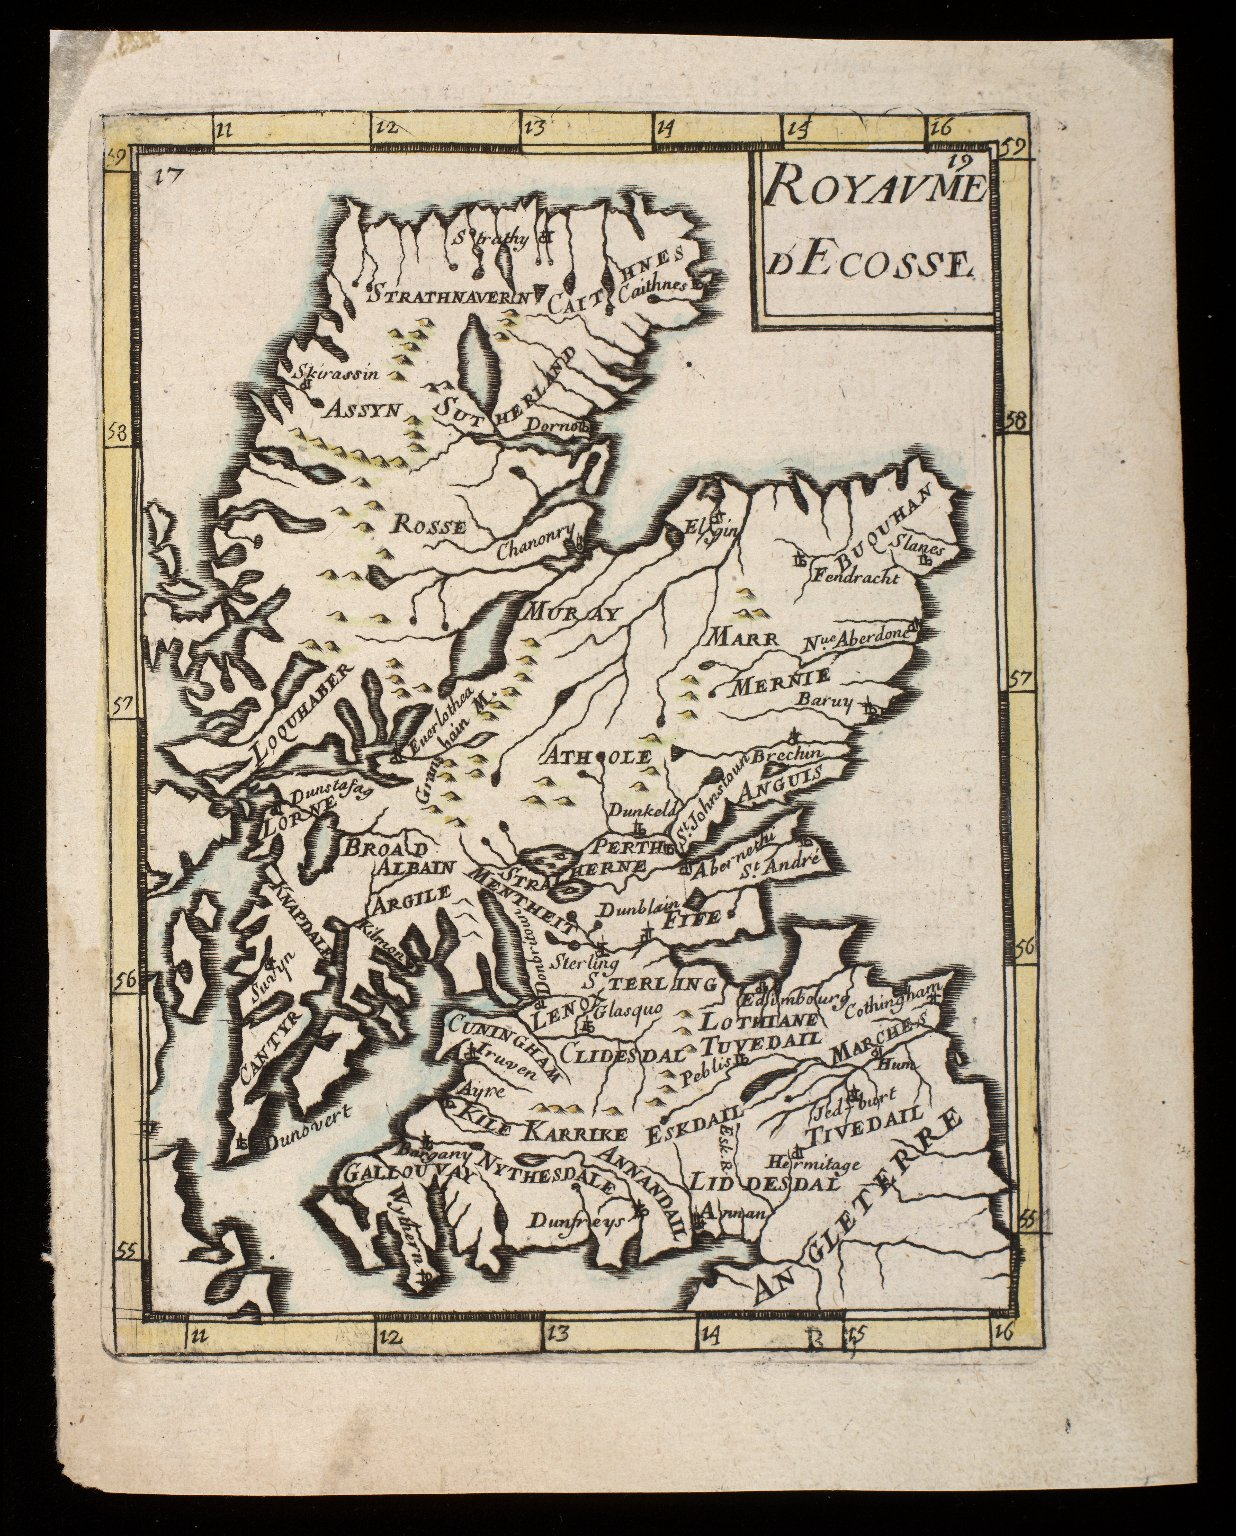 Royaume d'Ecosse [1 of 2]